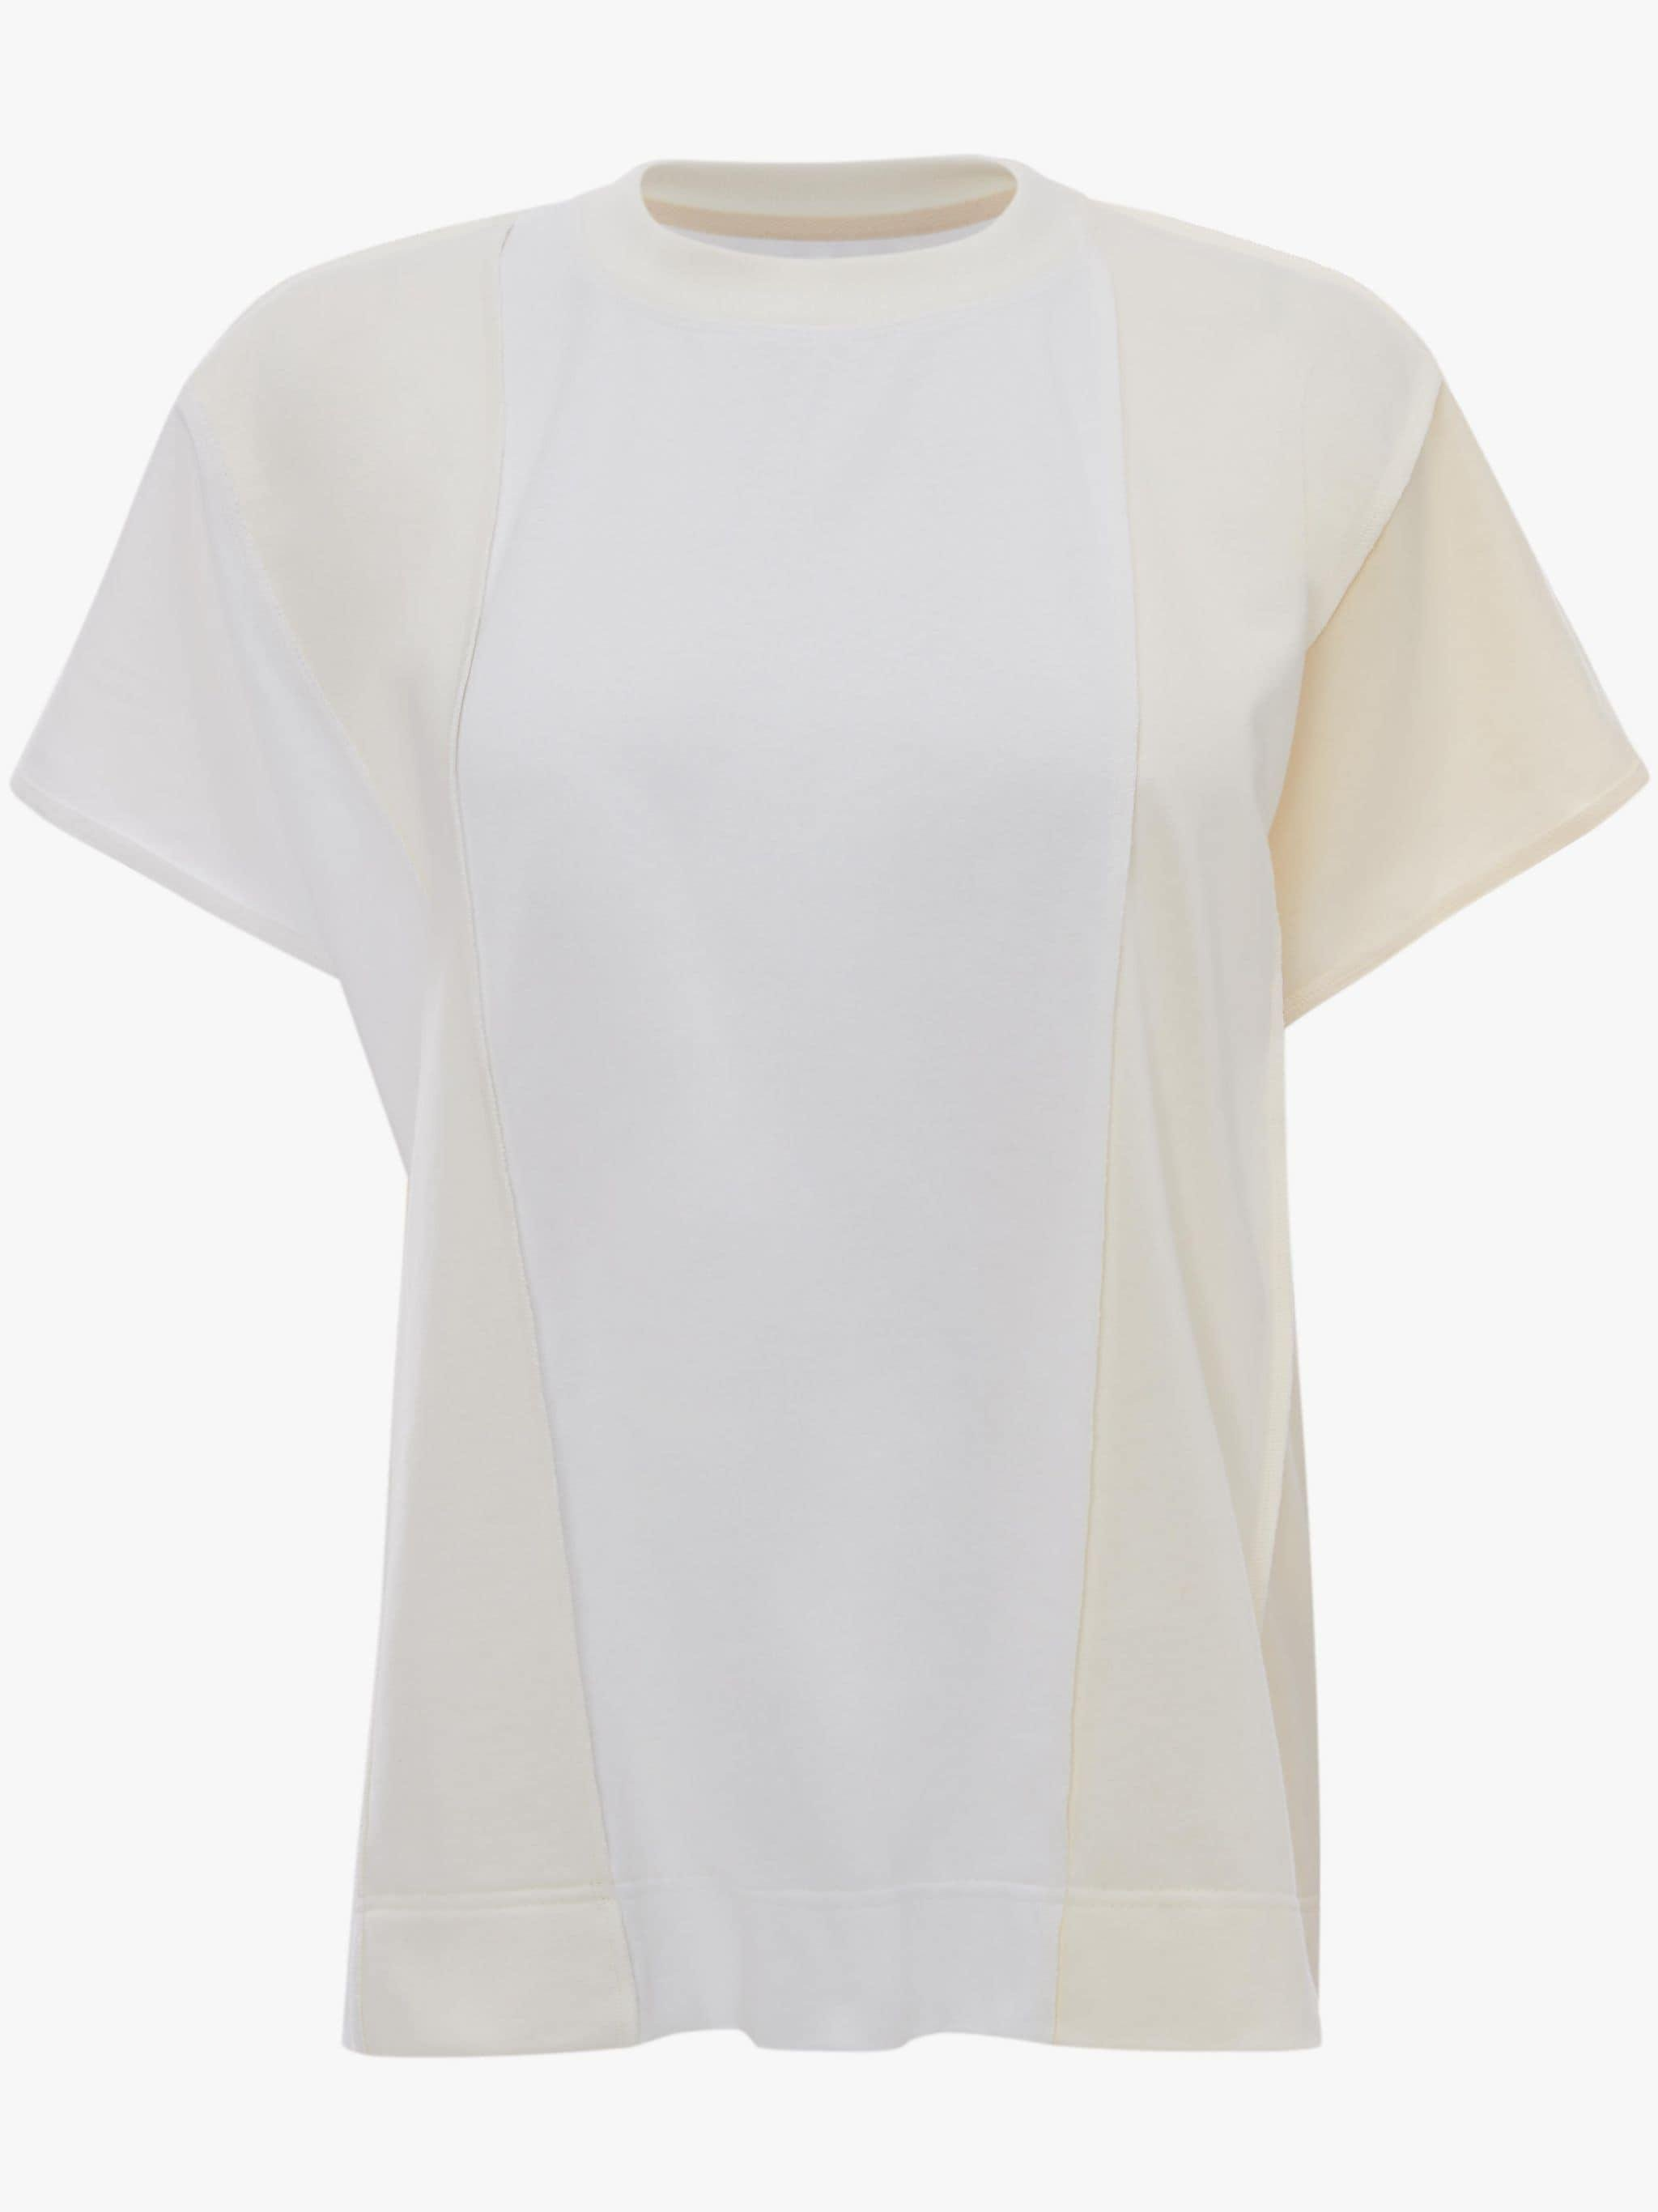 MADE IN BRITAIN: JERSEY PANEL TEE 4